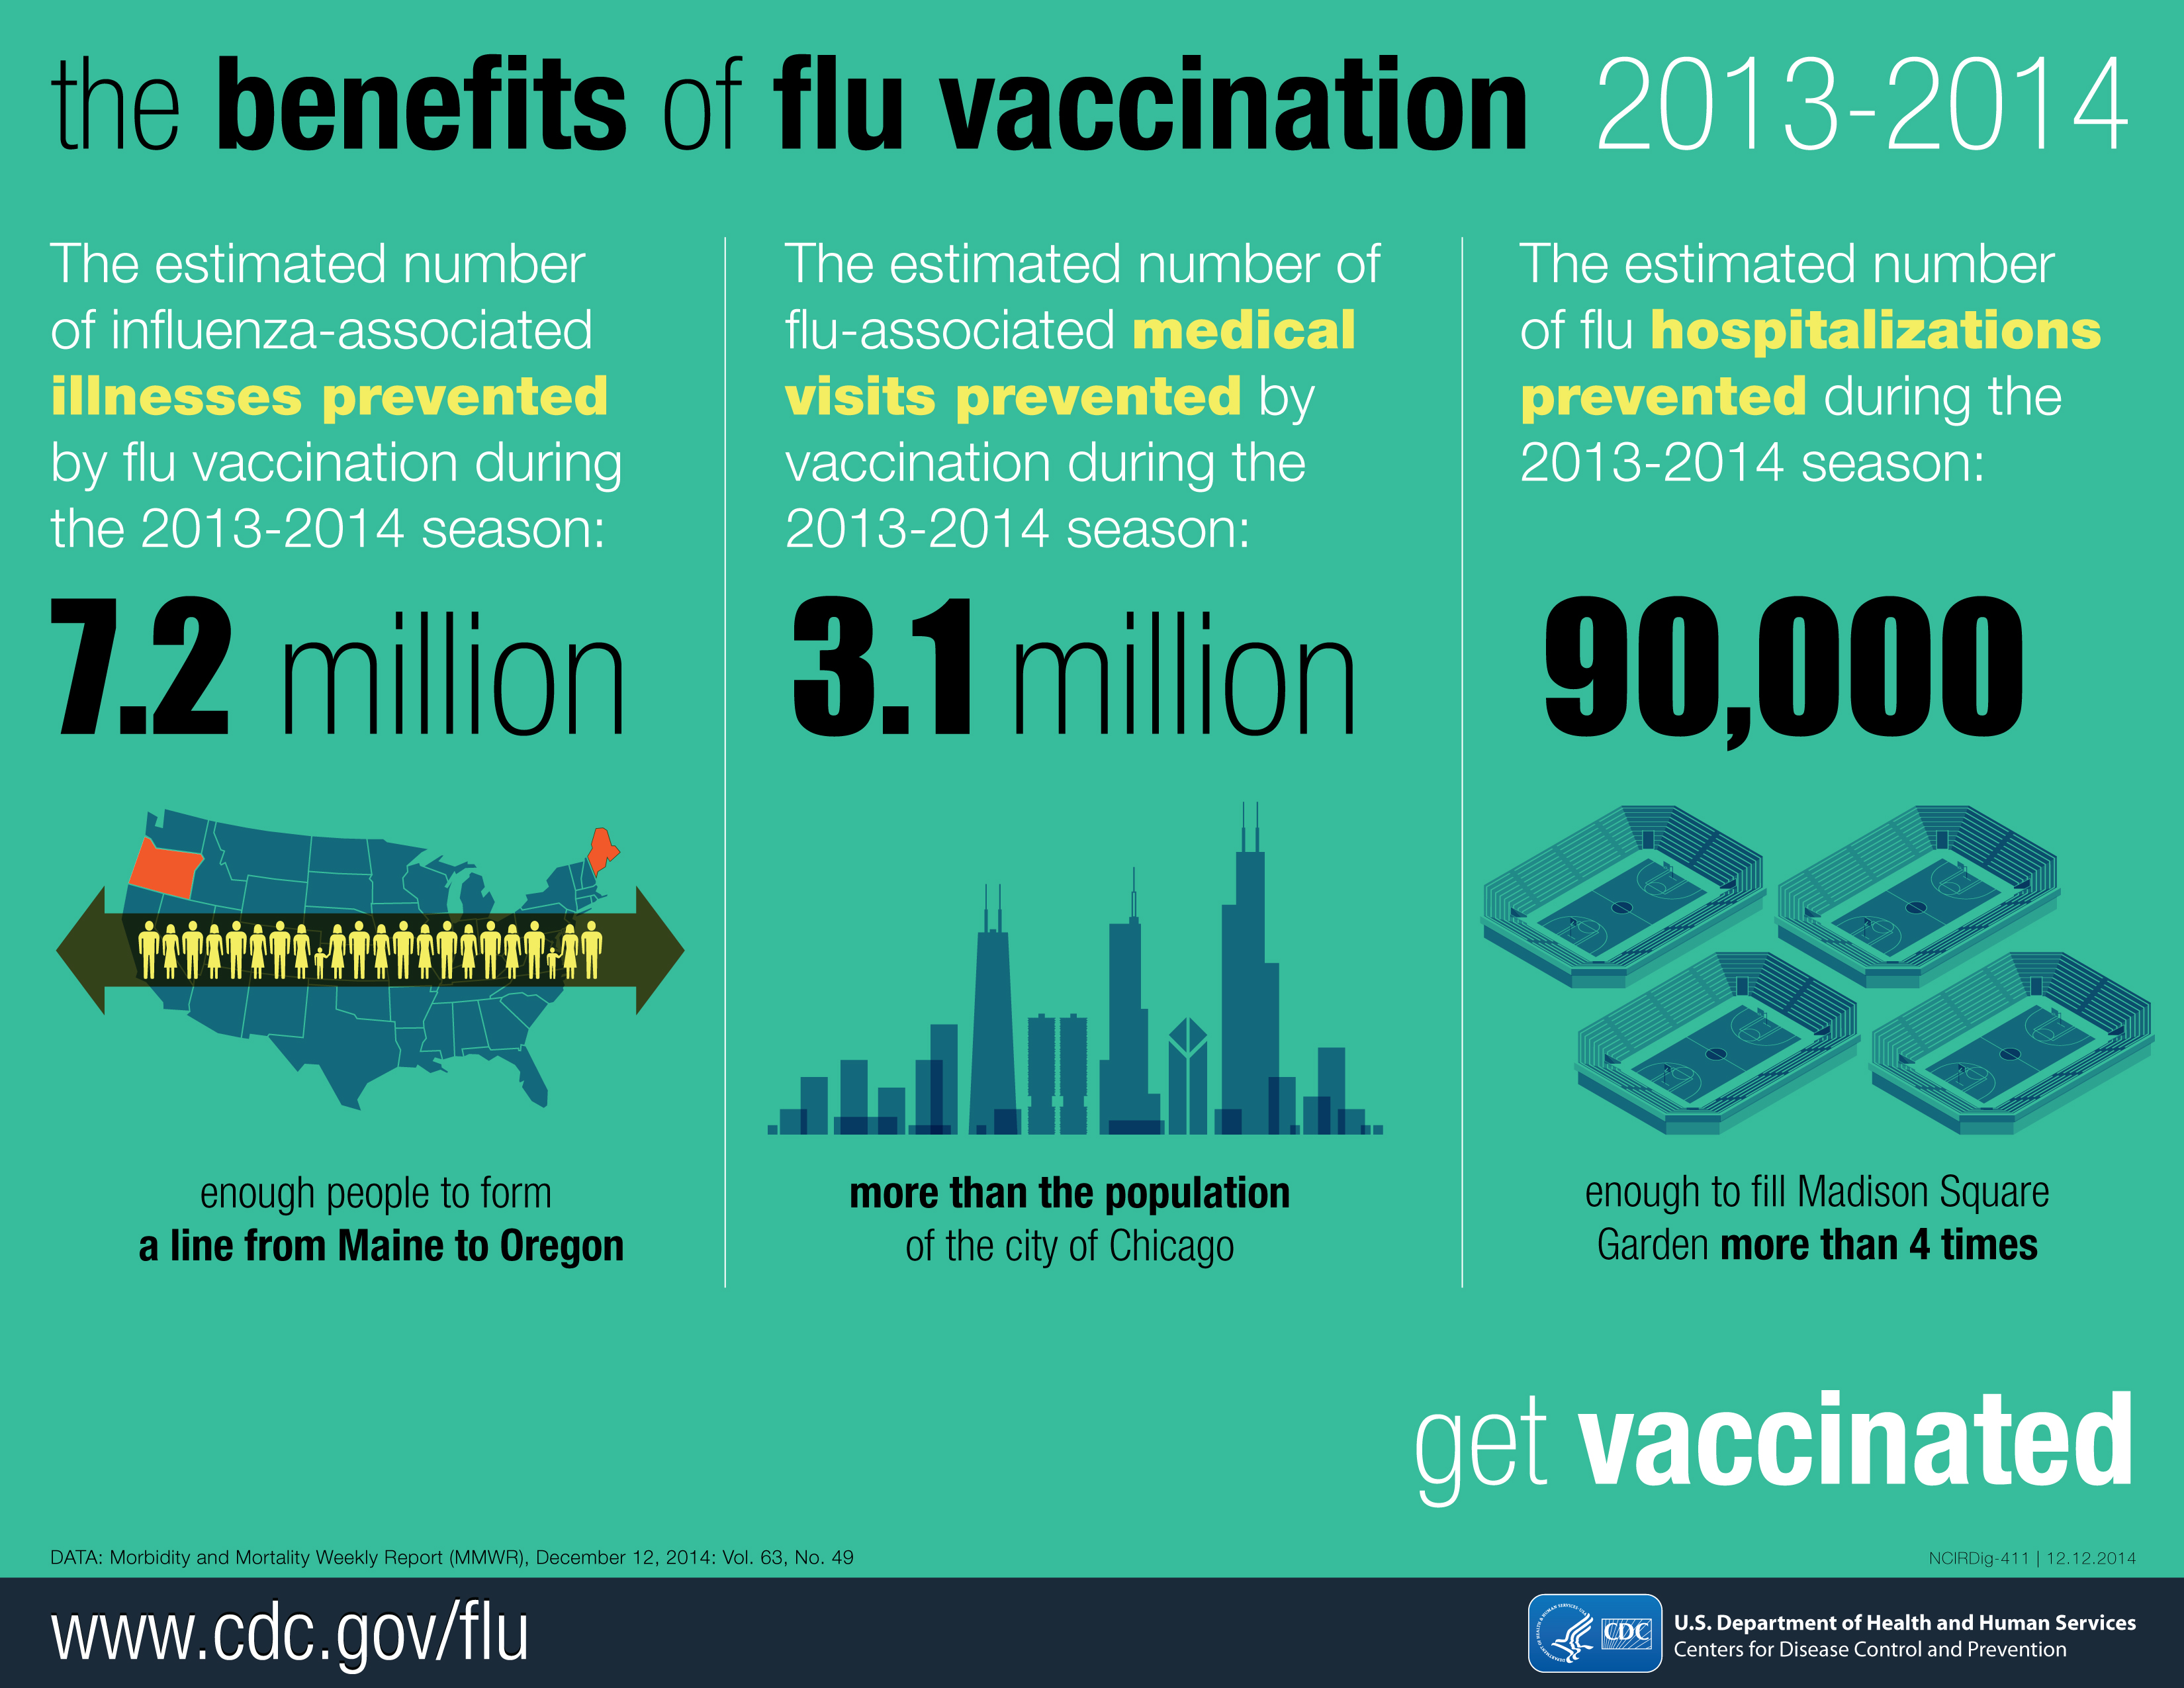 Image courtesy of Centers for Disease Control, St. George News